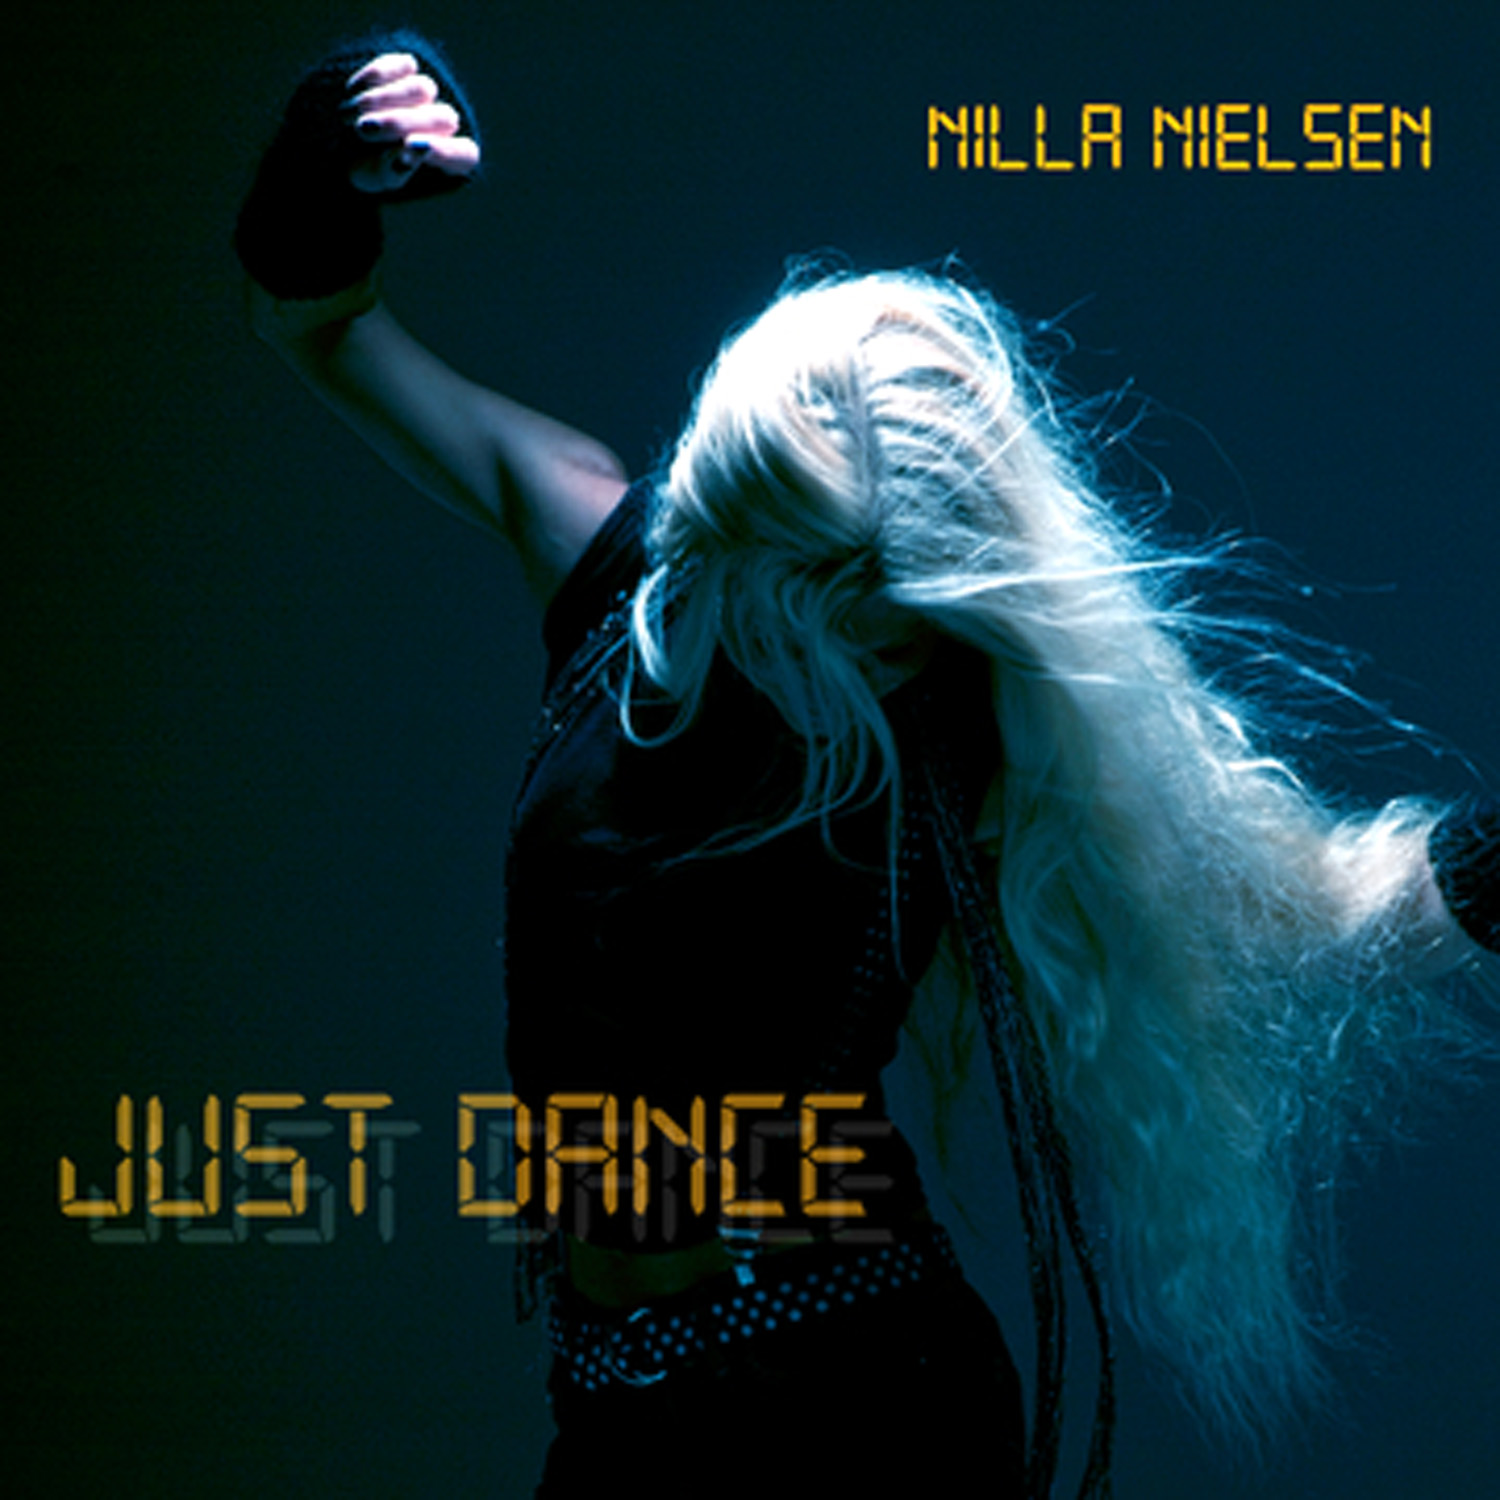 Nilla Nielsen - Just Dance